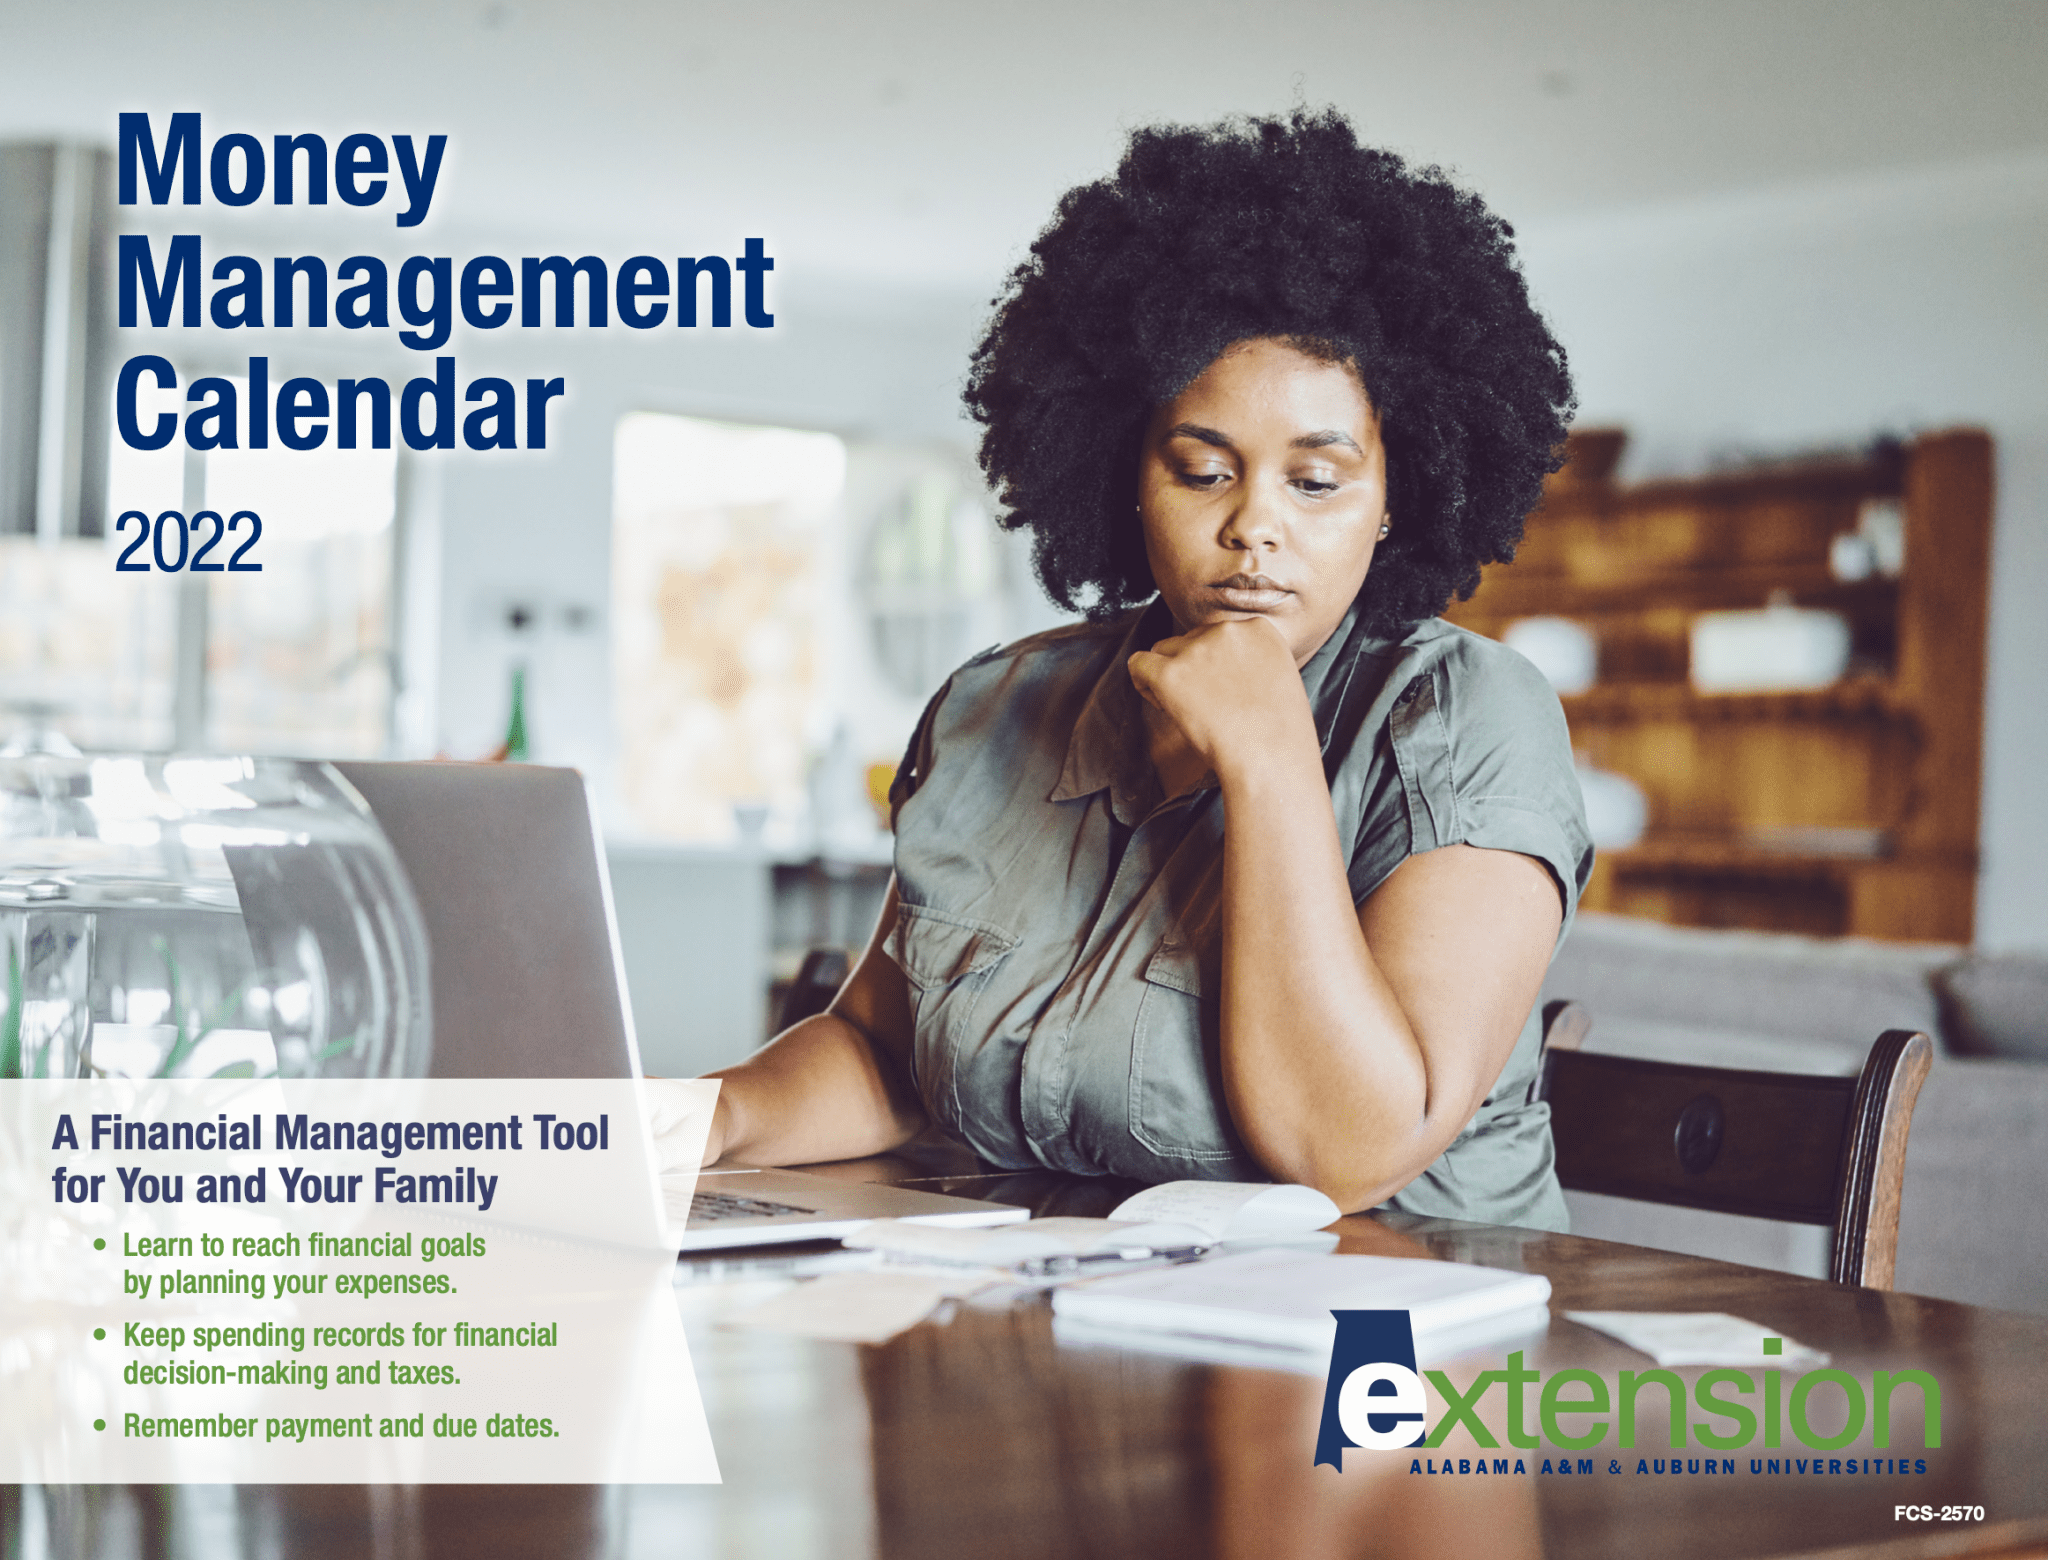 2022 Money Management Calendar. A Financial Management Tool for You and Your Family. Learn to reach financial goals by planning your expenses. Keep spending records for financial decision-making and taxes. Remember payment and due dates.